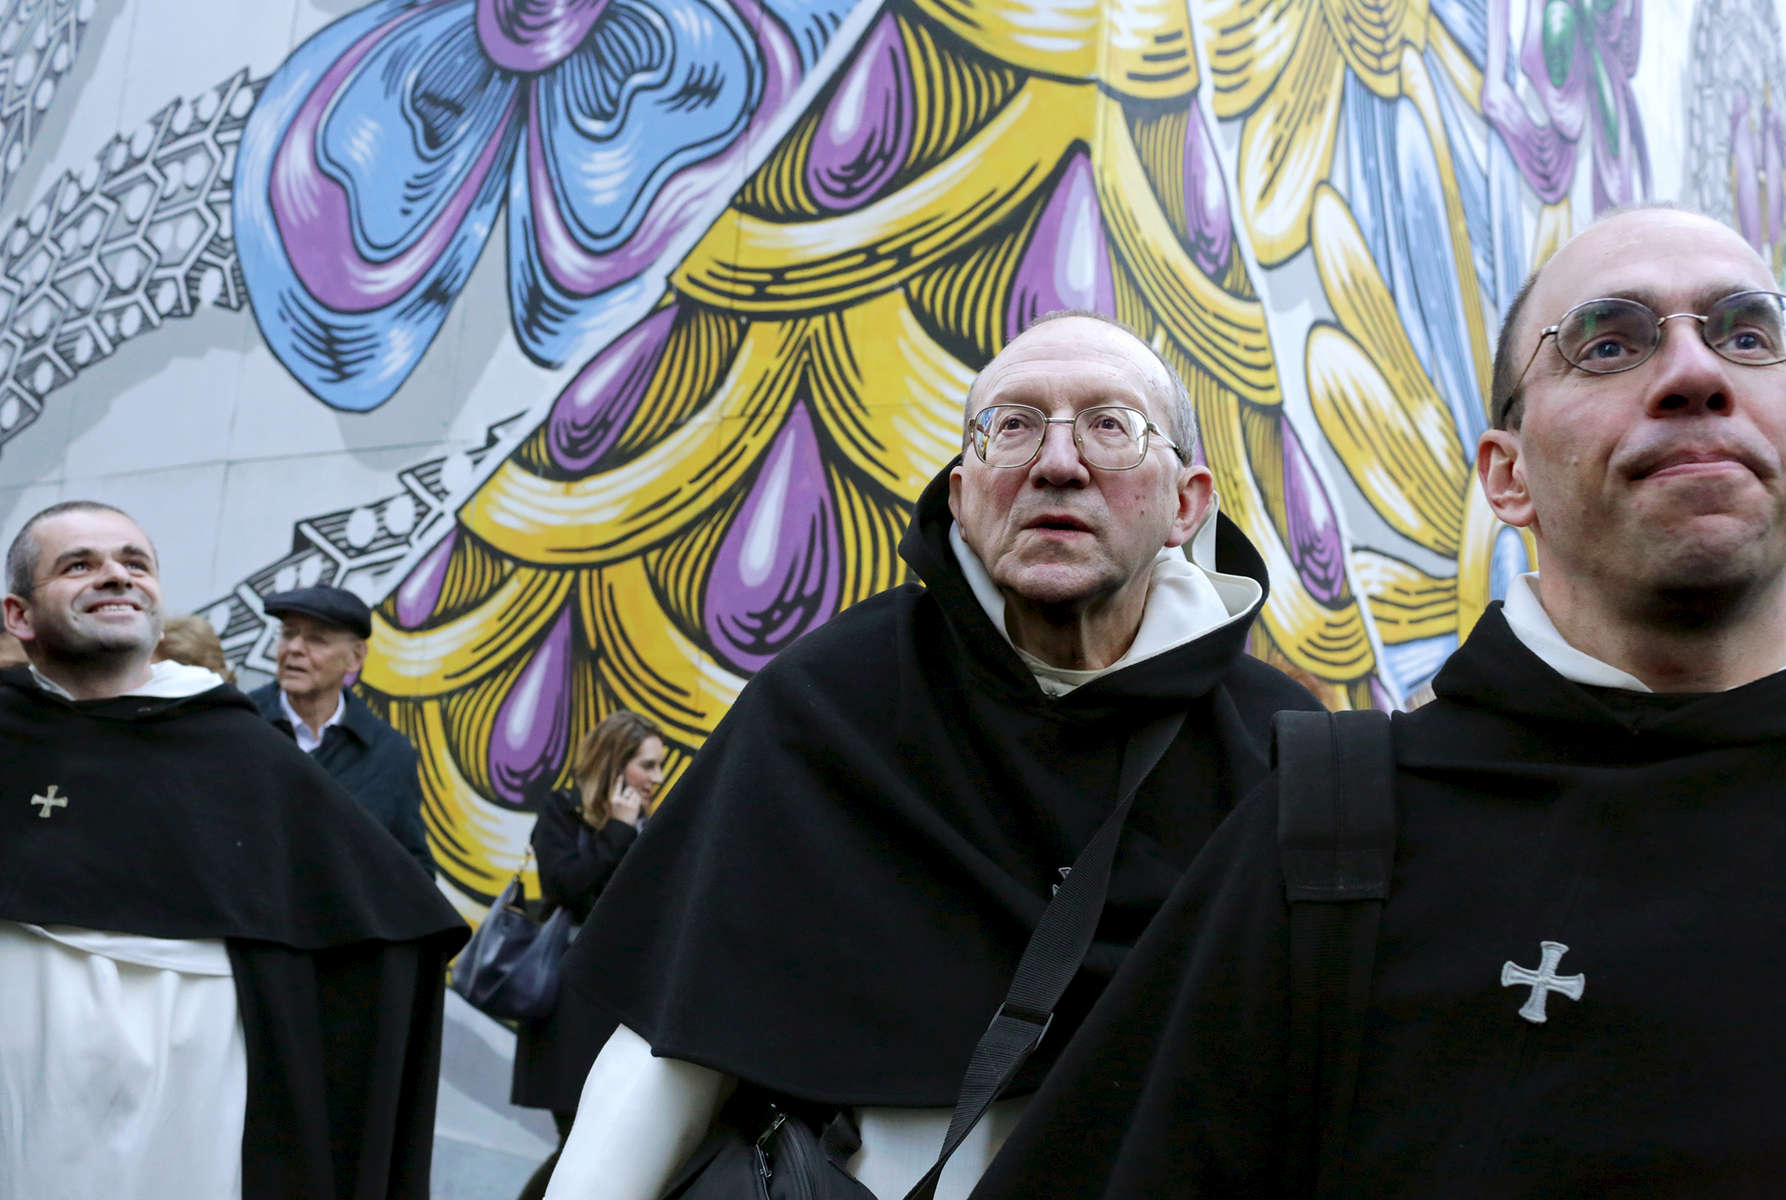 (L-R) Fr. Ambroise Pellaumail, Fr. Louis De Blignieres, and Fr. Reginald Rivoire, from Fraternite Saint Vincent Ferrier in France, walk by Trump Tower, the current residence of Republican President elect Donald Trump, in Manhattan, NY on November 18, 2016.-{quote}Trump Gawkers{quote} is a visceral look at what draws people to Trump Tower, through in-depth interviews and still photos - a project I started the day after the election. At first, I simply followed where my assignments sent me, but then found myself returning to the place on my own, unable to look away - and I wasn't alone. Hoards of people undertake the trek, bearing security and weather roadblocks, to stare, gawk, absorb, record. The magnetism to Trump Tower (and by extension, to the man in the tower,) manifests in the sheer numbers of daily visitors, as well as in the fascination etched across their faces. Upon first look, the time so many spend there seems like sport and amusement, but underneath upturned eyes and selfie smiles prevails an undercurrent of anxiety - and not just for those who didn't want Trump in the Oval Office. Some of the electorate that voted against Hillary is now unsure for which version of Trump they voted. People's upward gazes, no matter their political views, seek answers: How could this happen? Or now that it has, what will it mean?